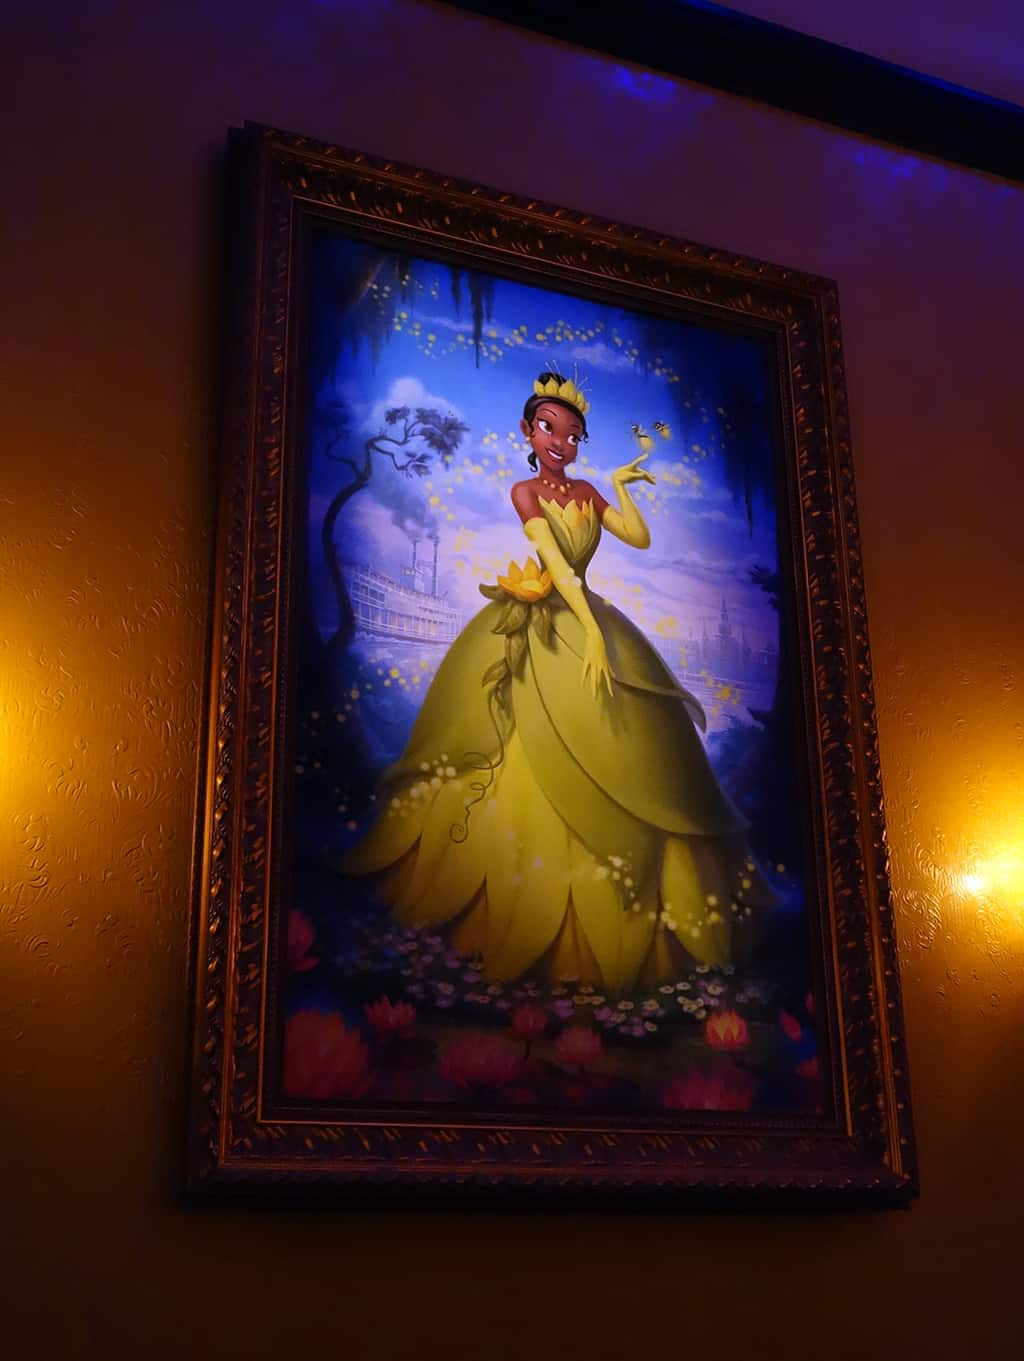 Tiana still meets in the glade, but it's a pretty picture, right?